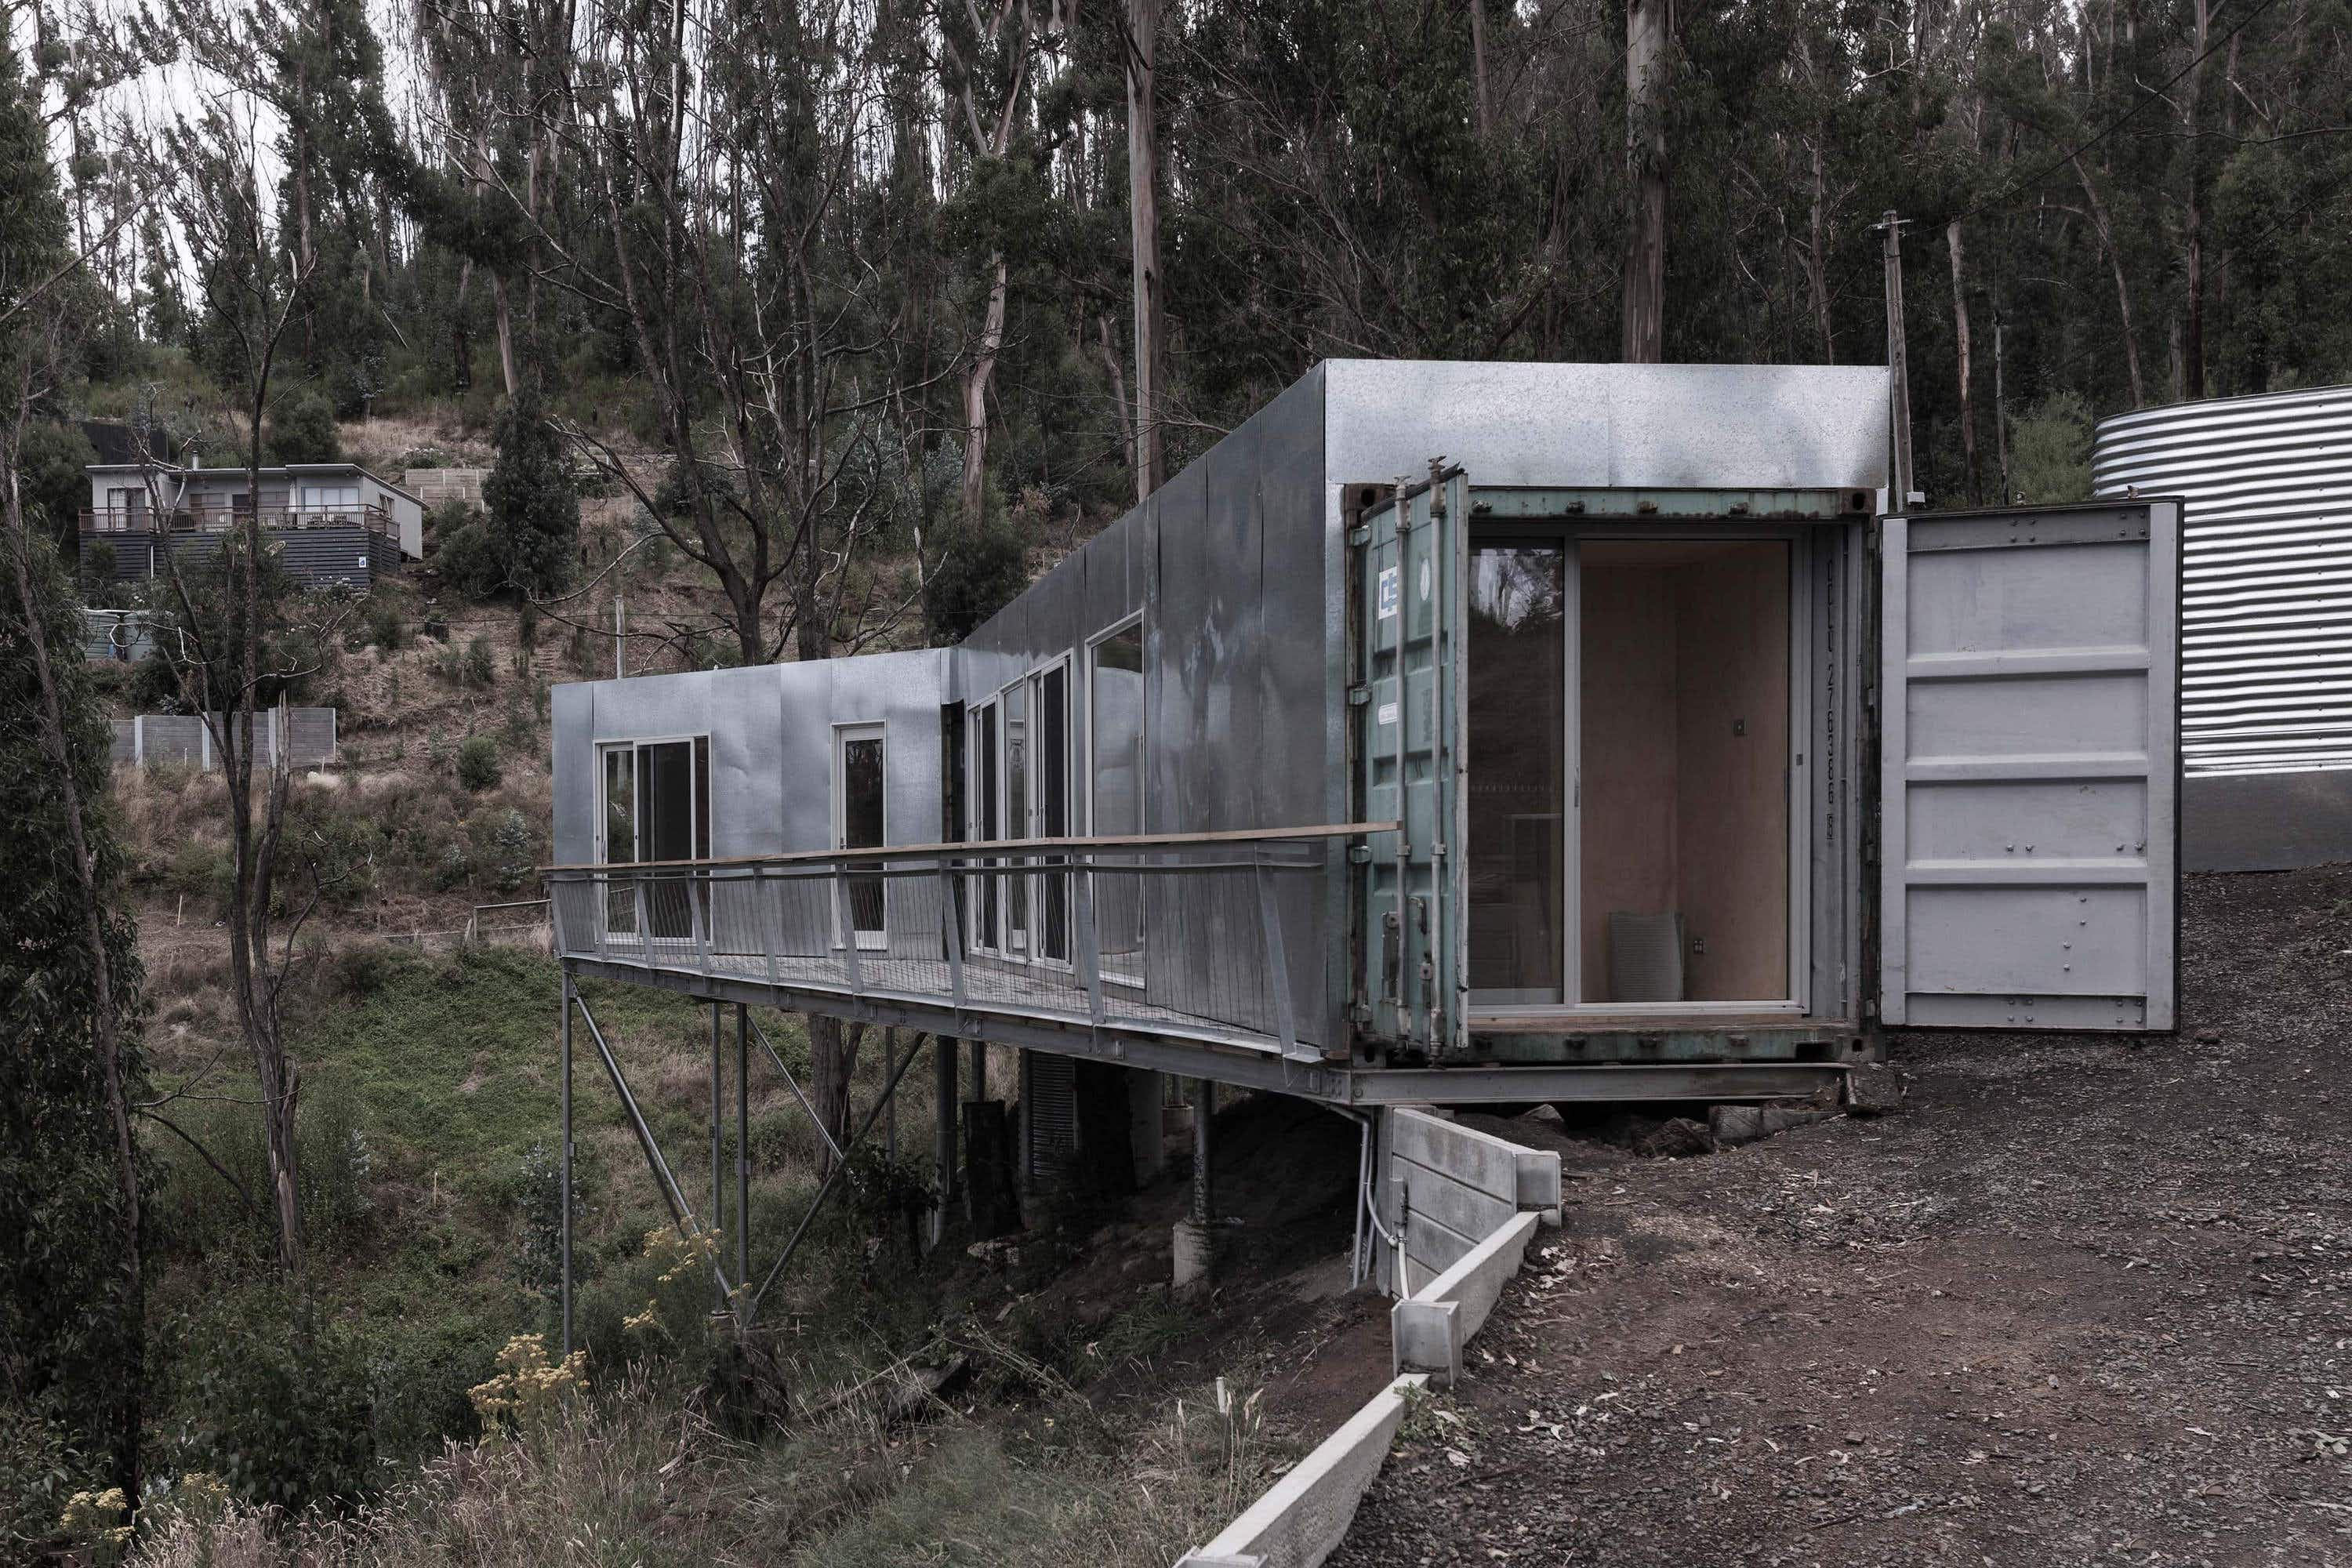 Stay in a shipping container holiday home built into a hillside in Australia